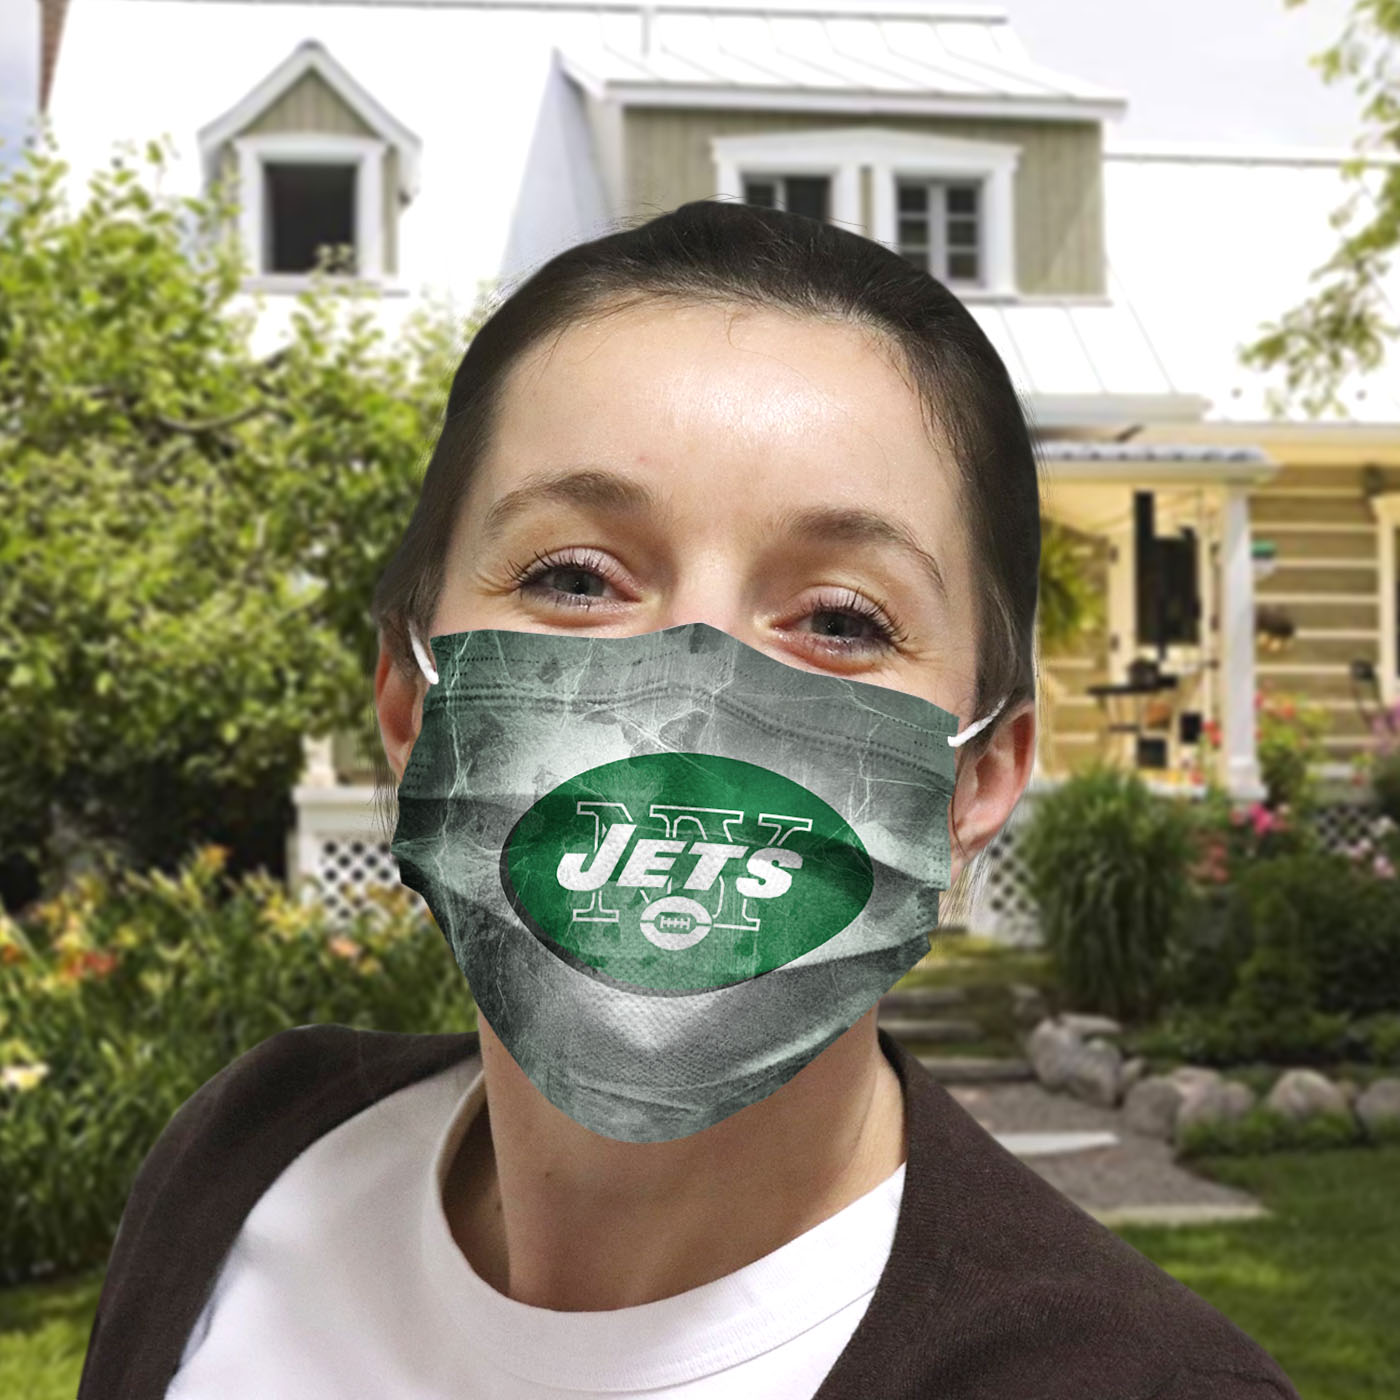 National football league new york jets cotton face mask 4